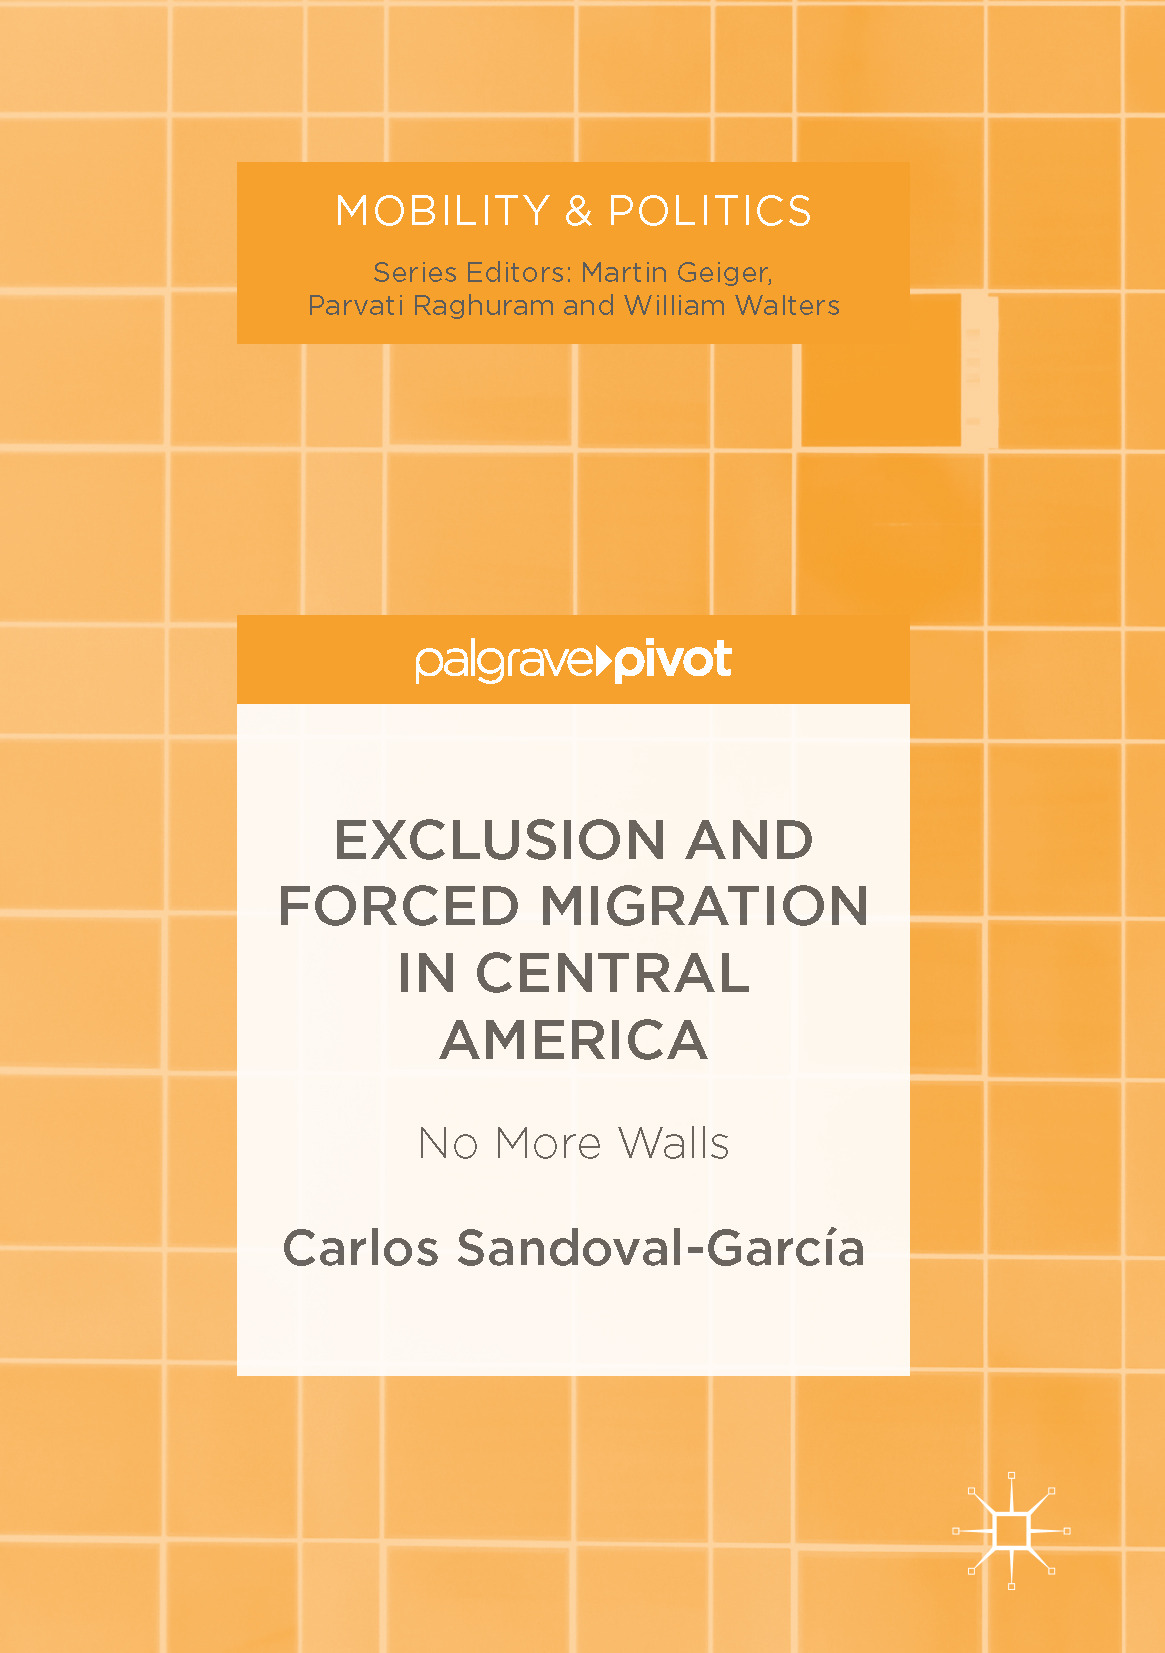 Sandoval-García, Carlos - Exclusion and Forced Migration in Central America, ebook